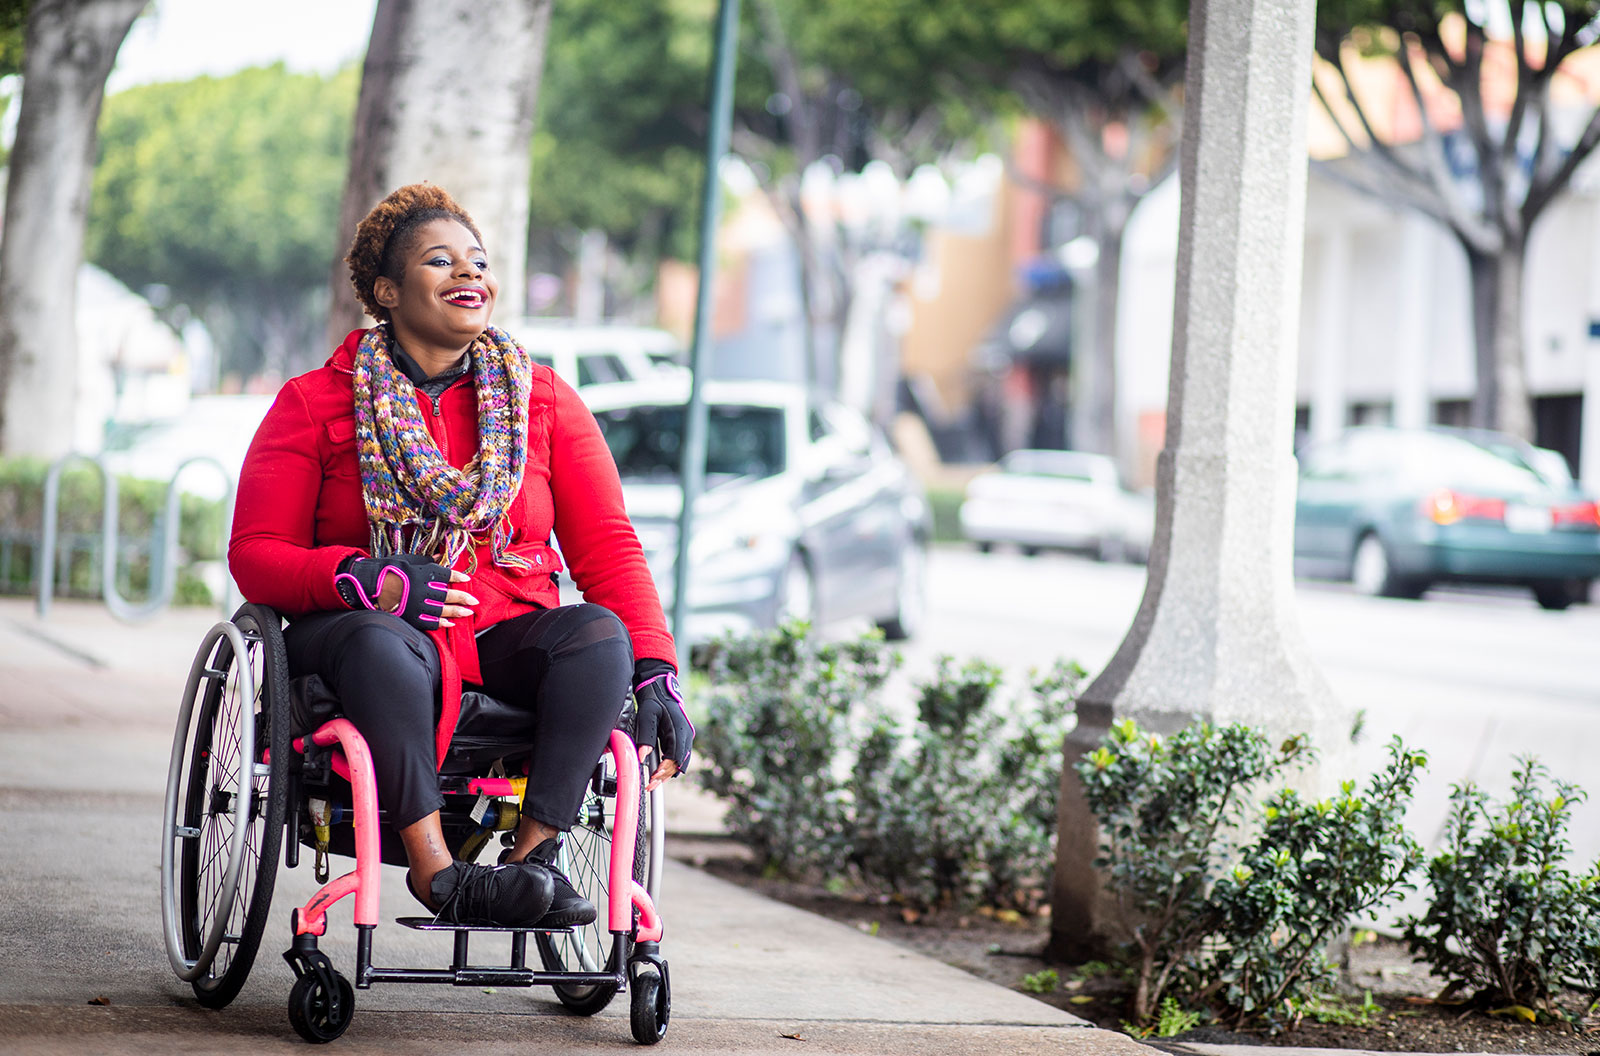 A young, disabled Black woman in a wheelchair wearing a red sweater explores a city